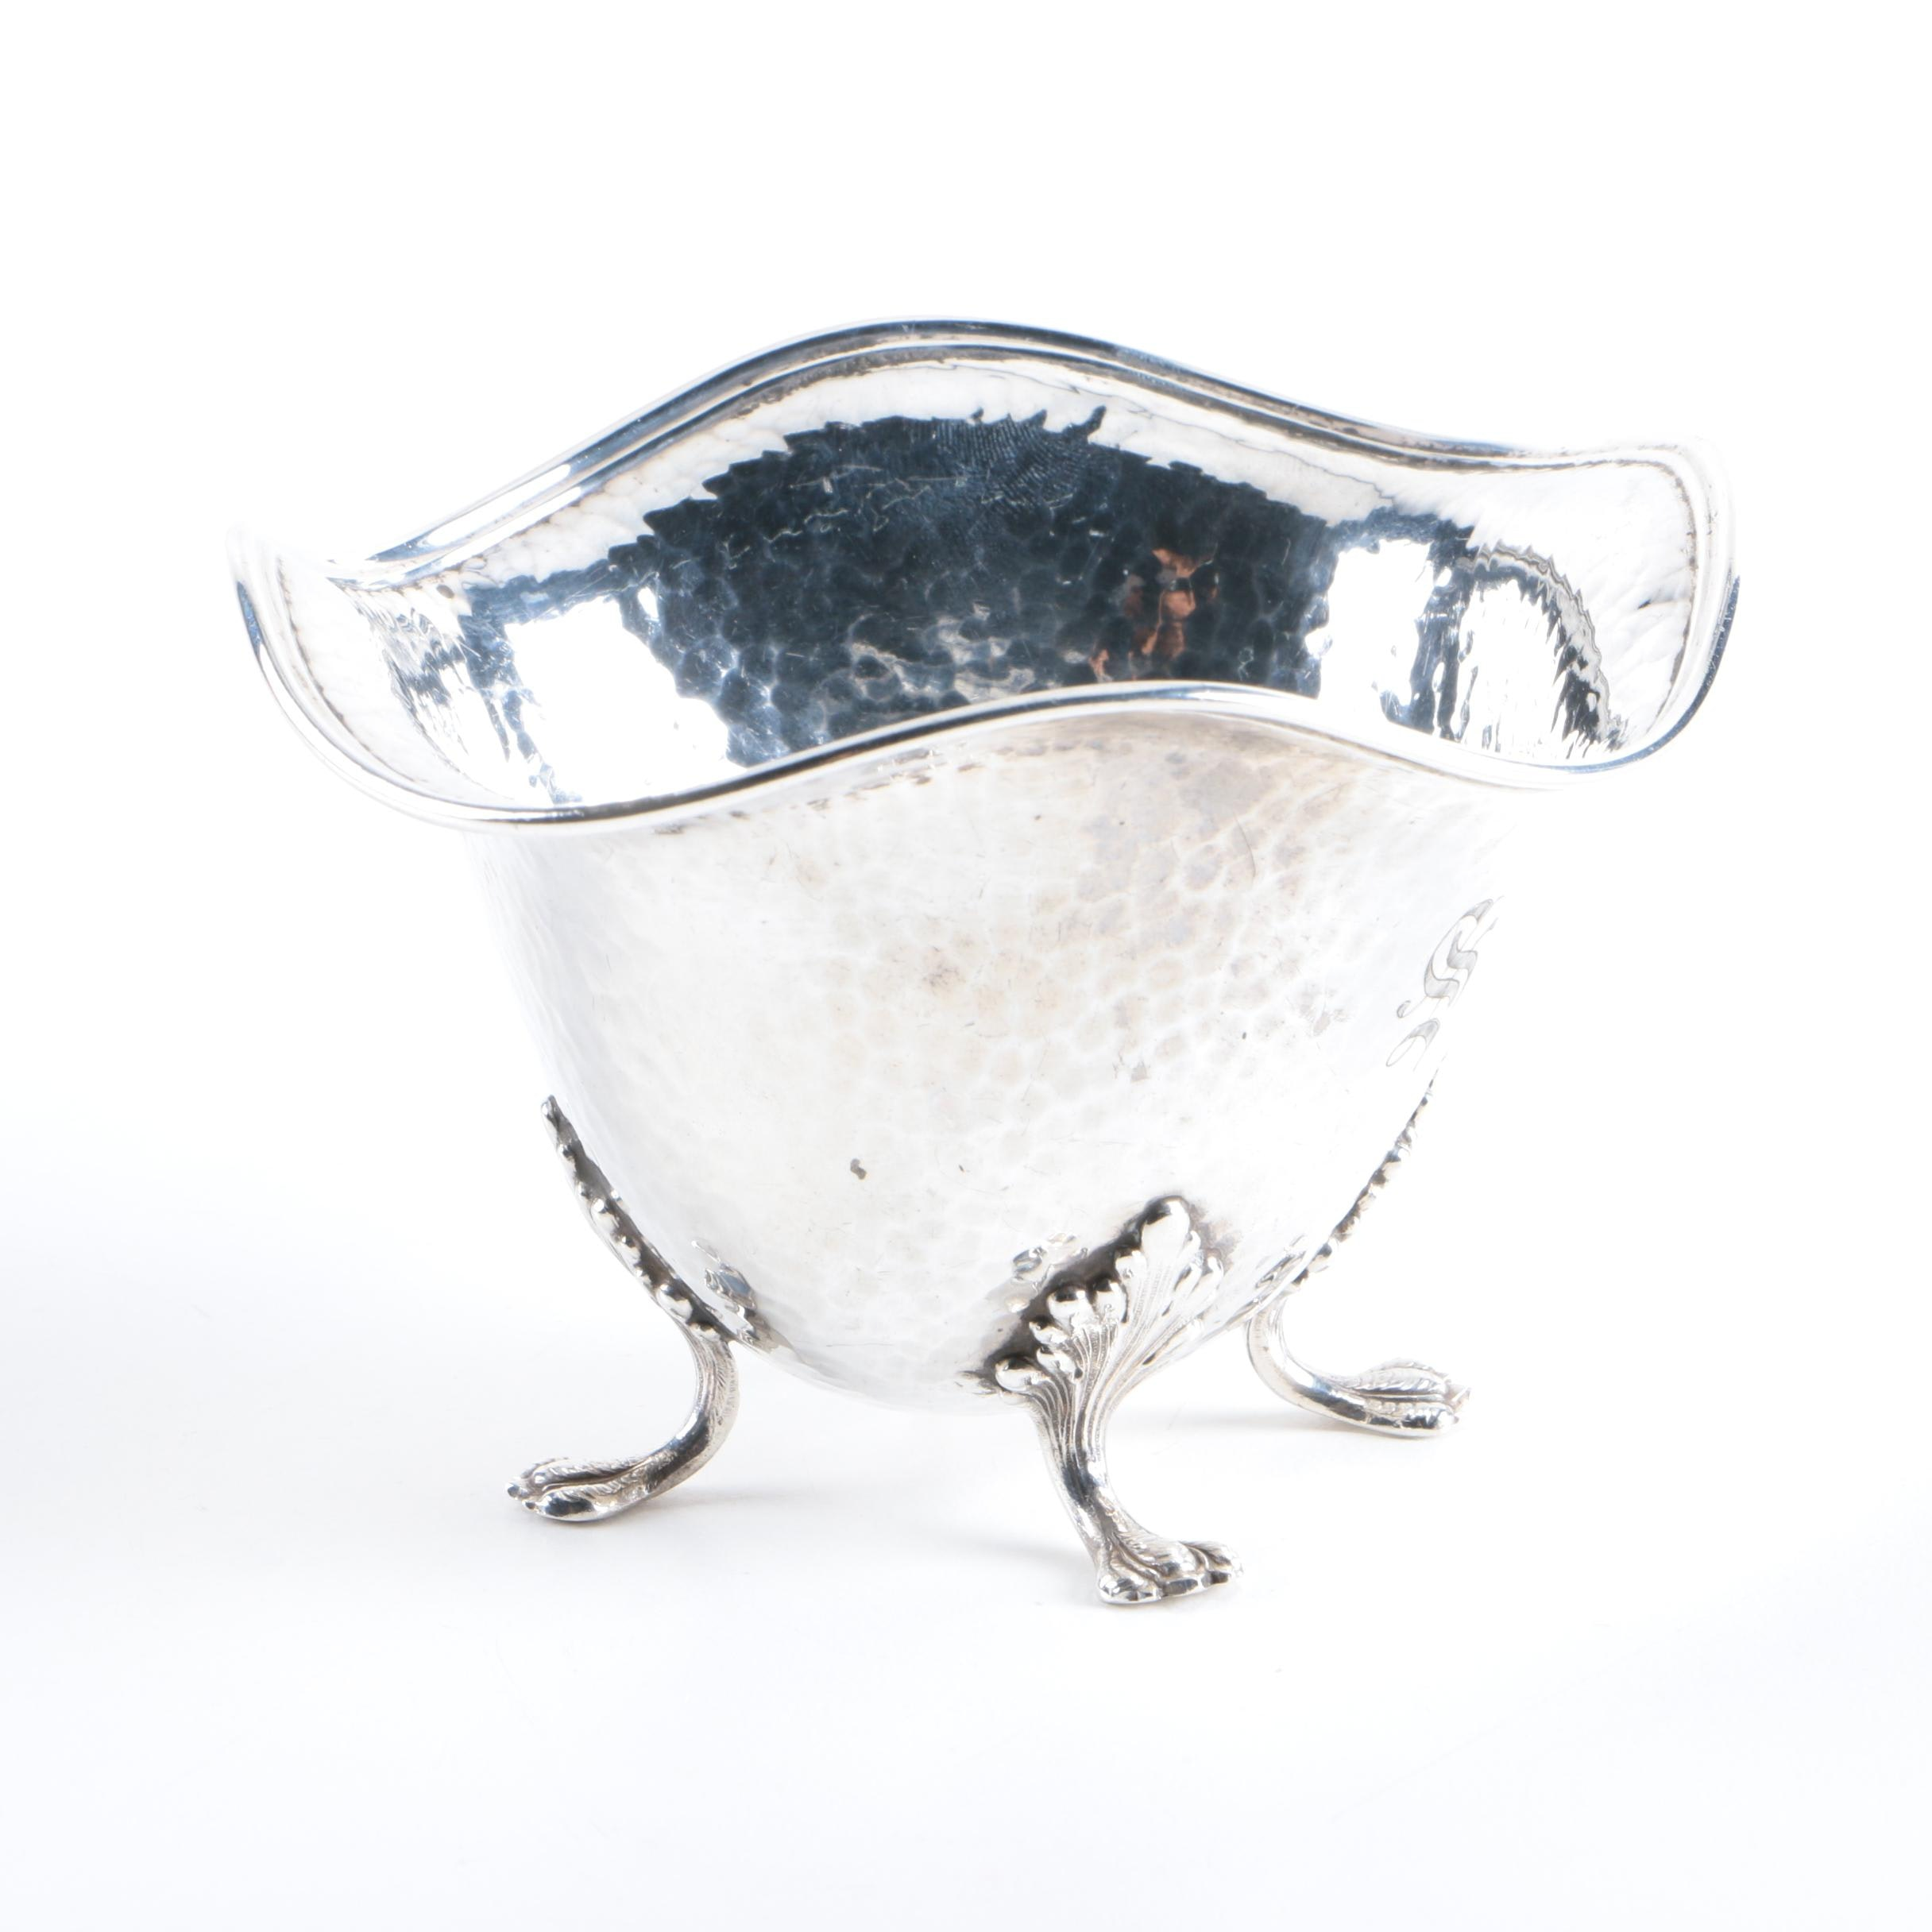 Watson Company Sterling Silver Hammered and Footed Open Sugar Bowl